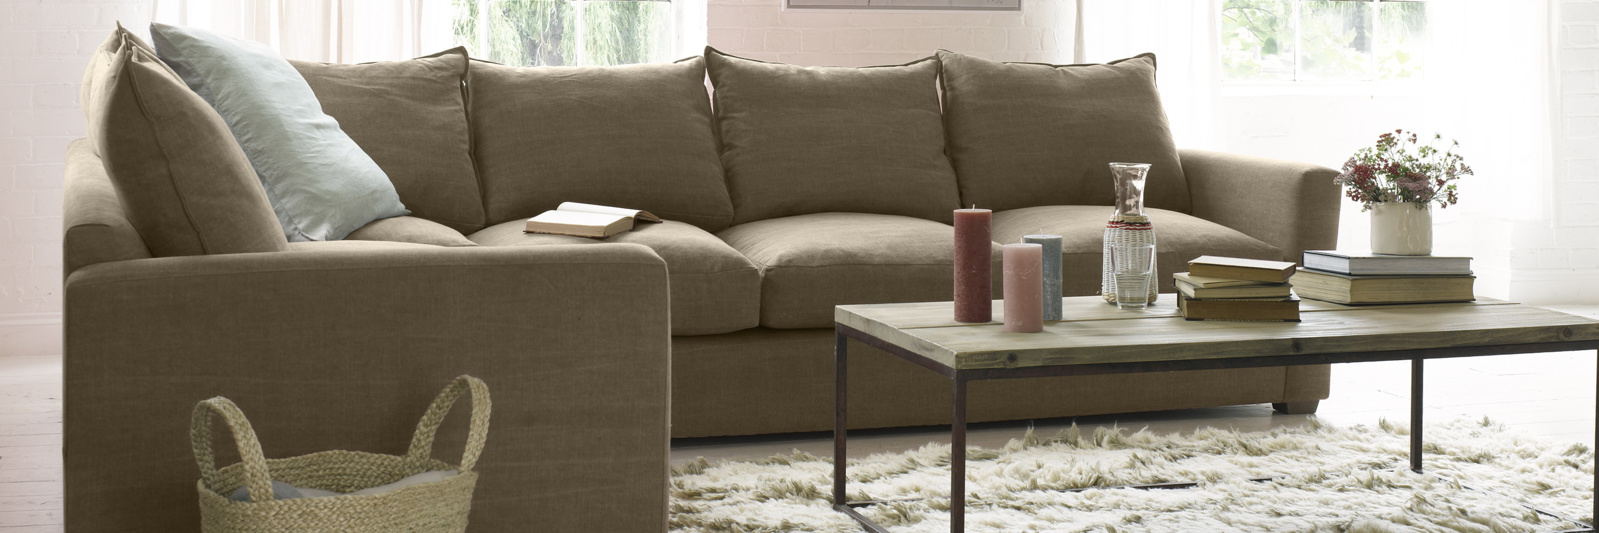 Pavilion corner sofa in brown fabric